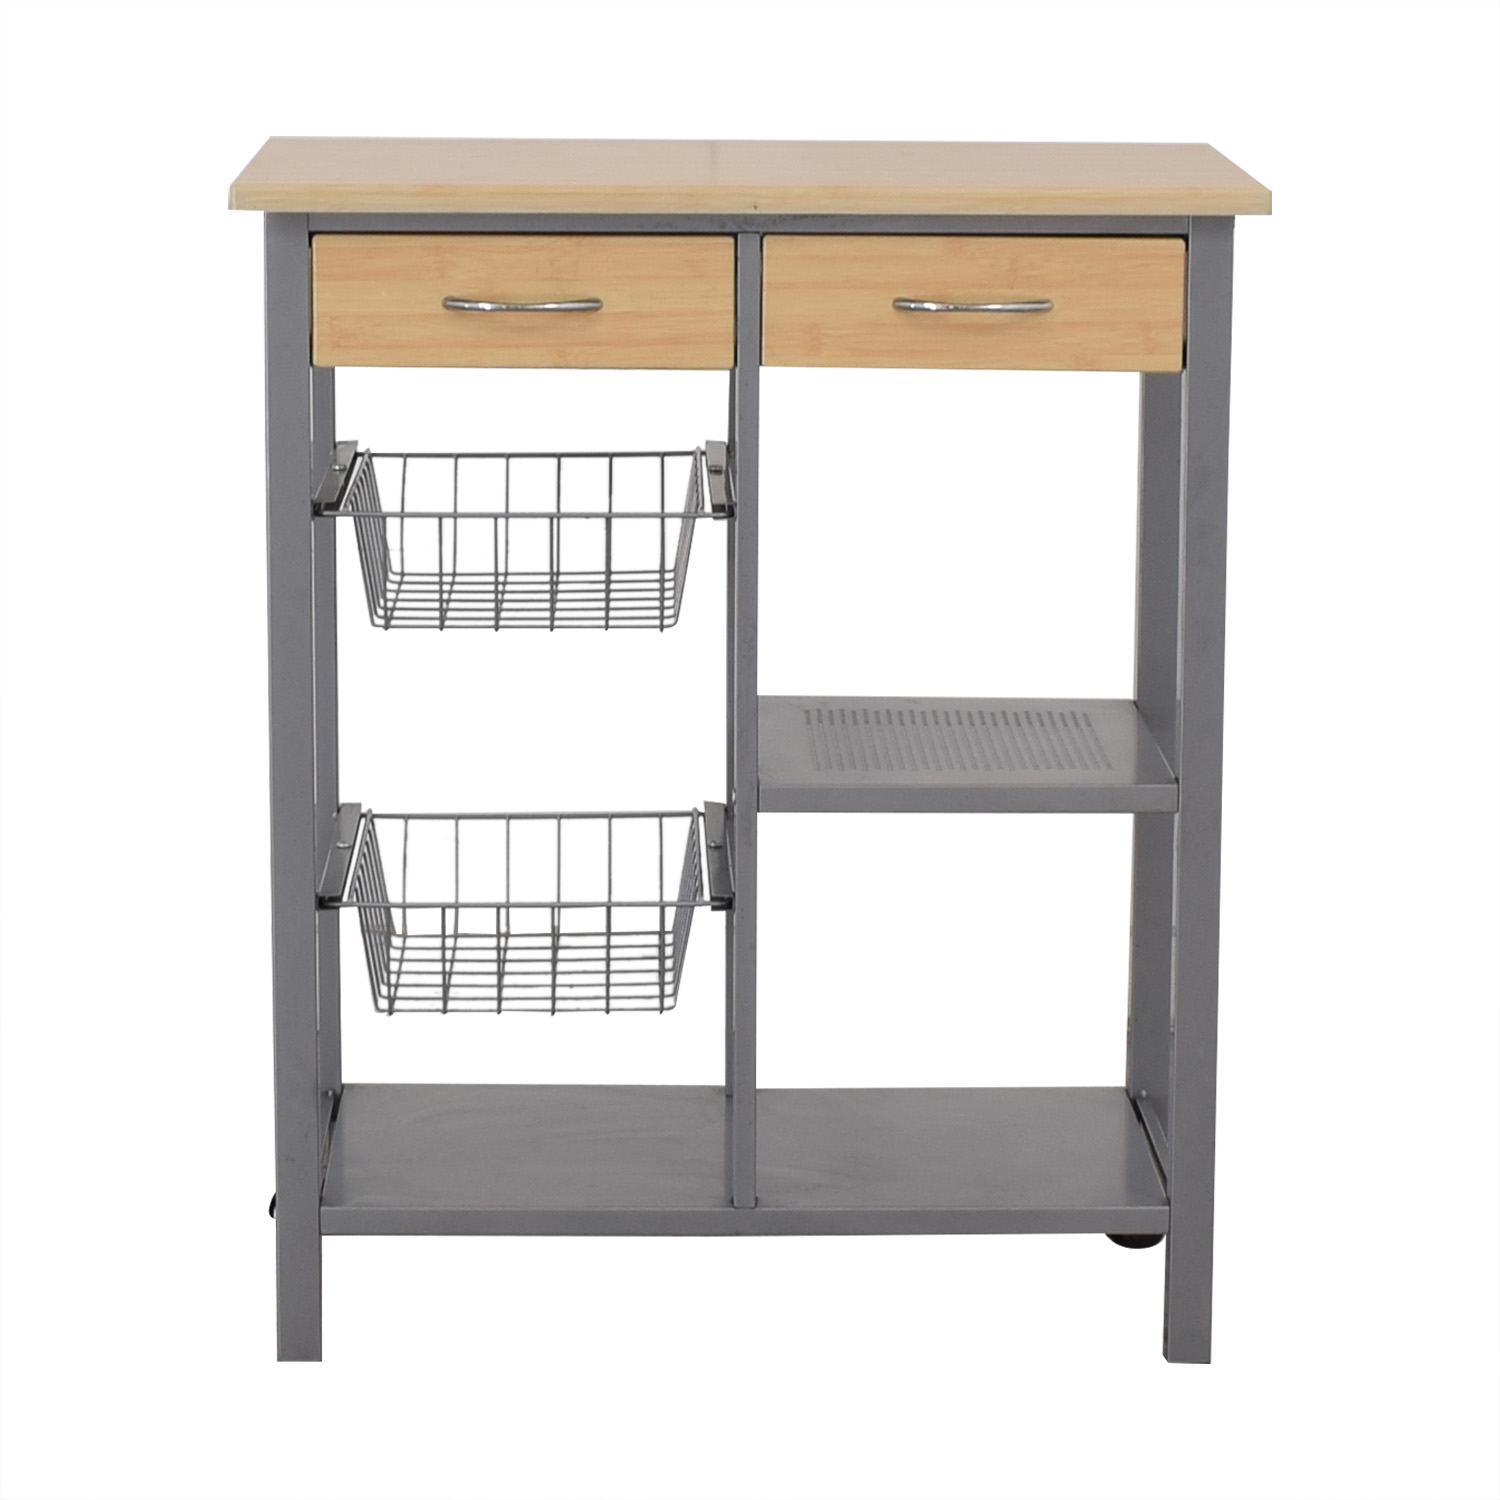 Kitchen Utility Cart second hand